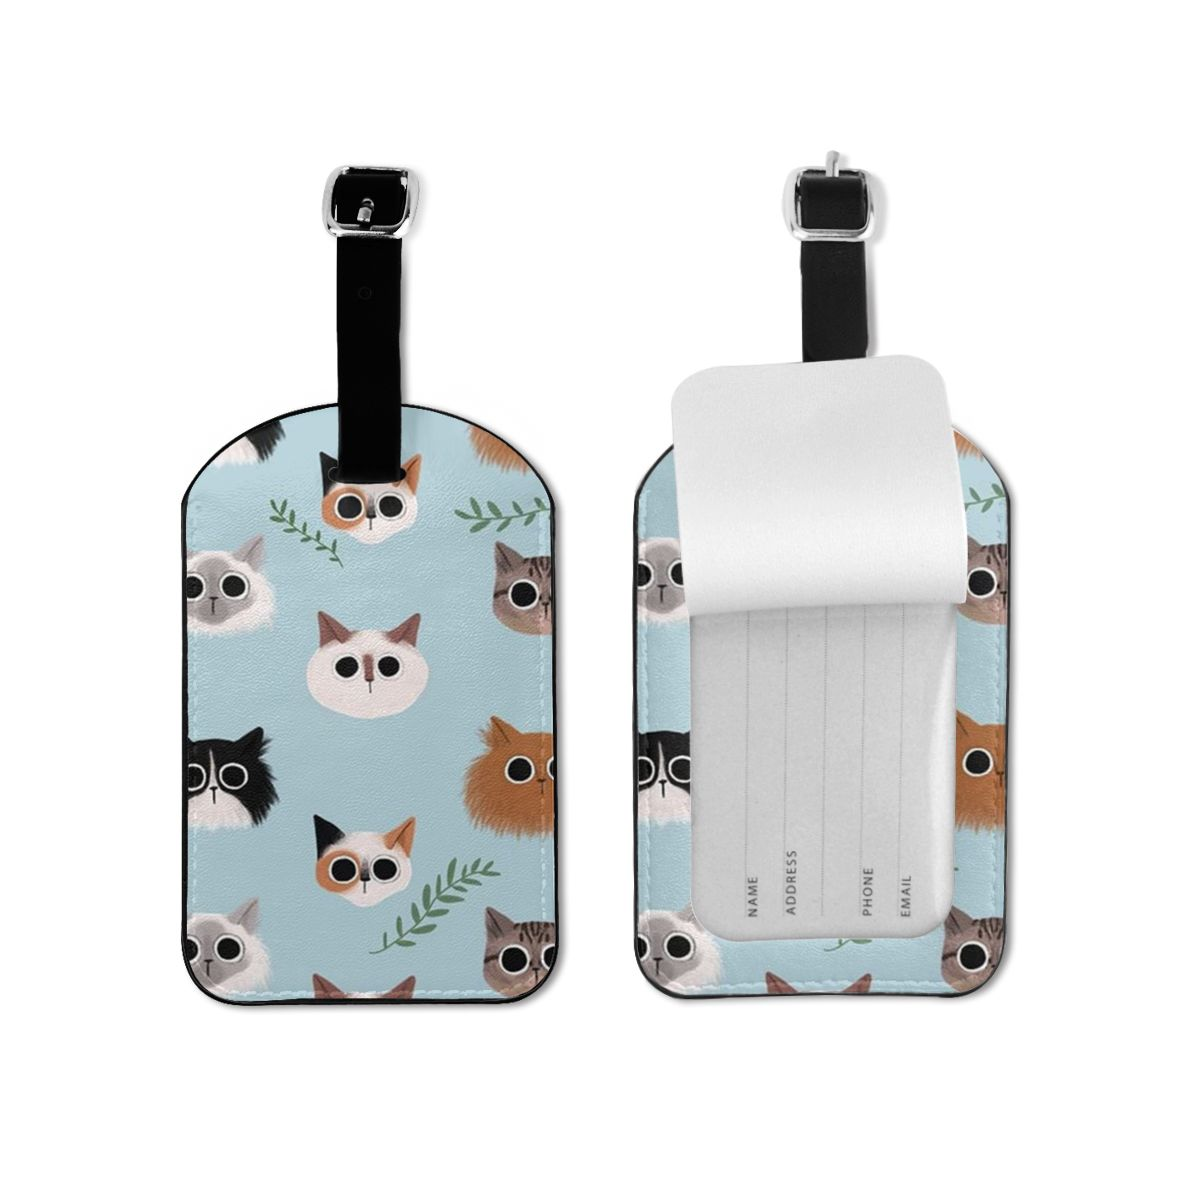 NOISYDESIGNS Animals Cat Funny Printed Luggage Tag Travel Accessories For Women Men Creative Suitcase Luggage Tag New